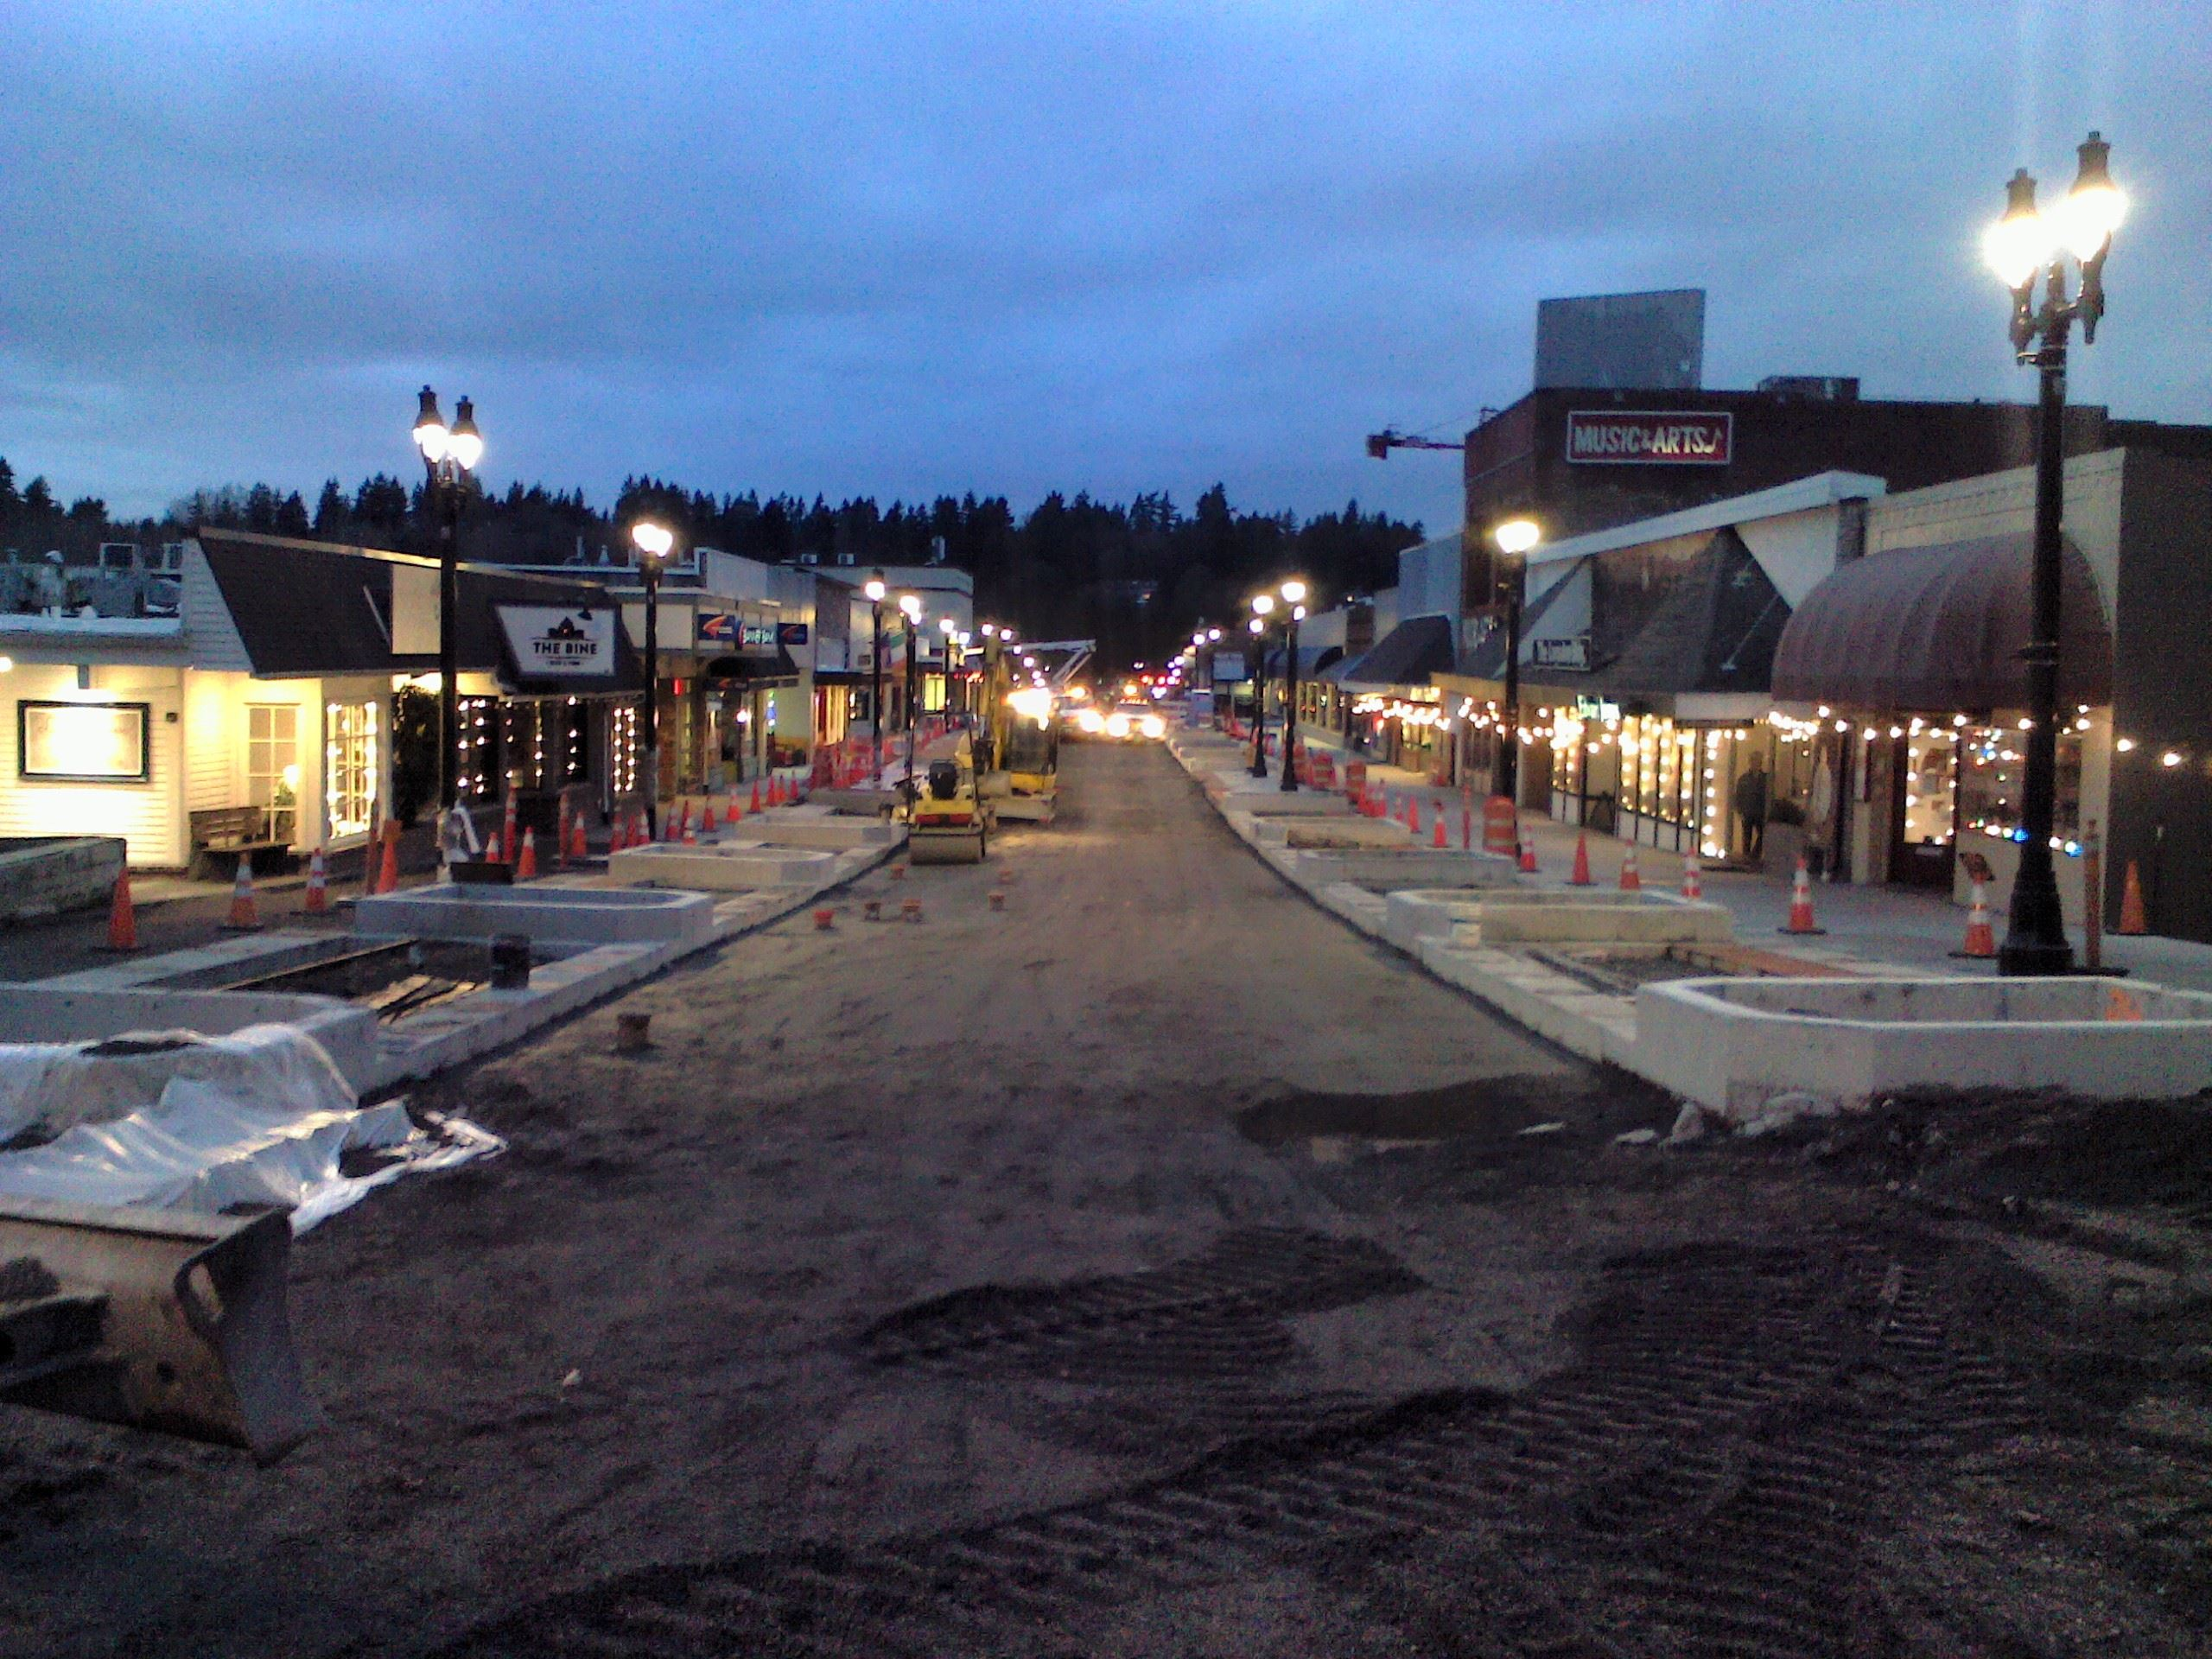 Night view of Main Street as of 2-01-18